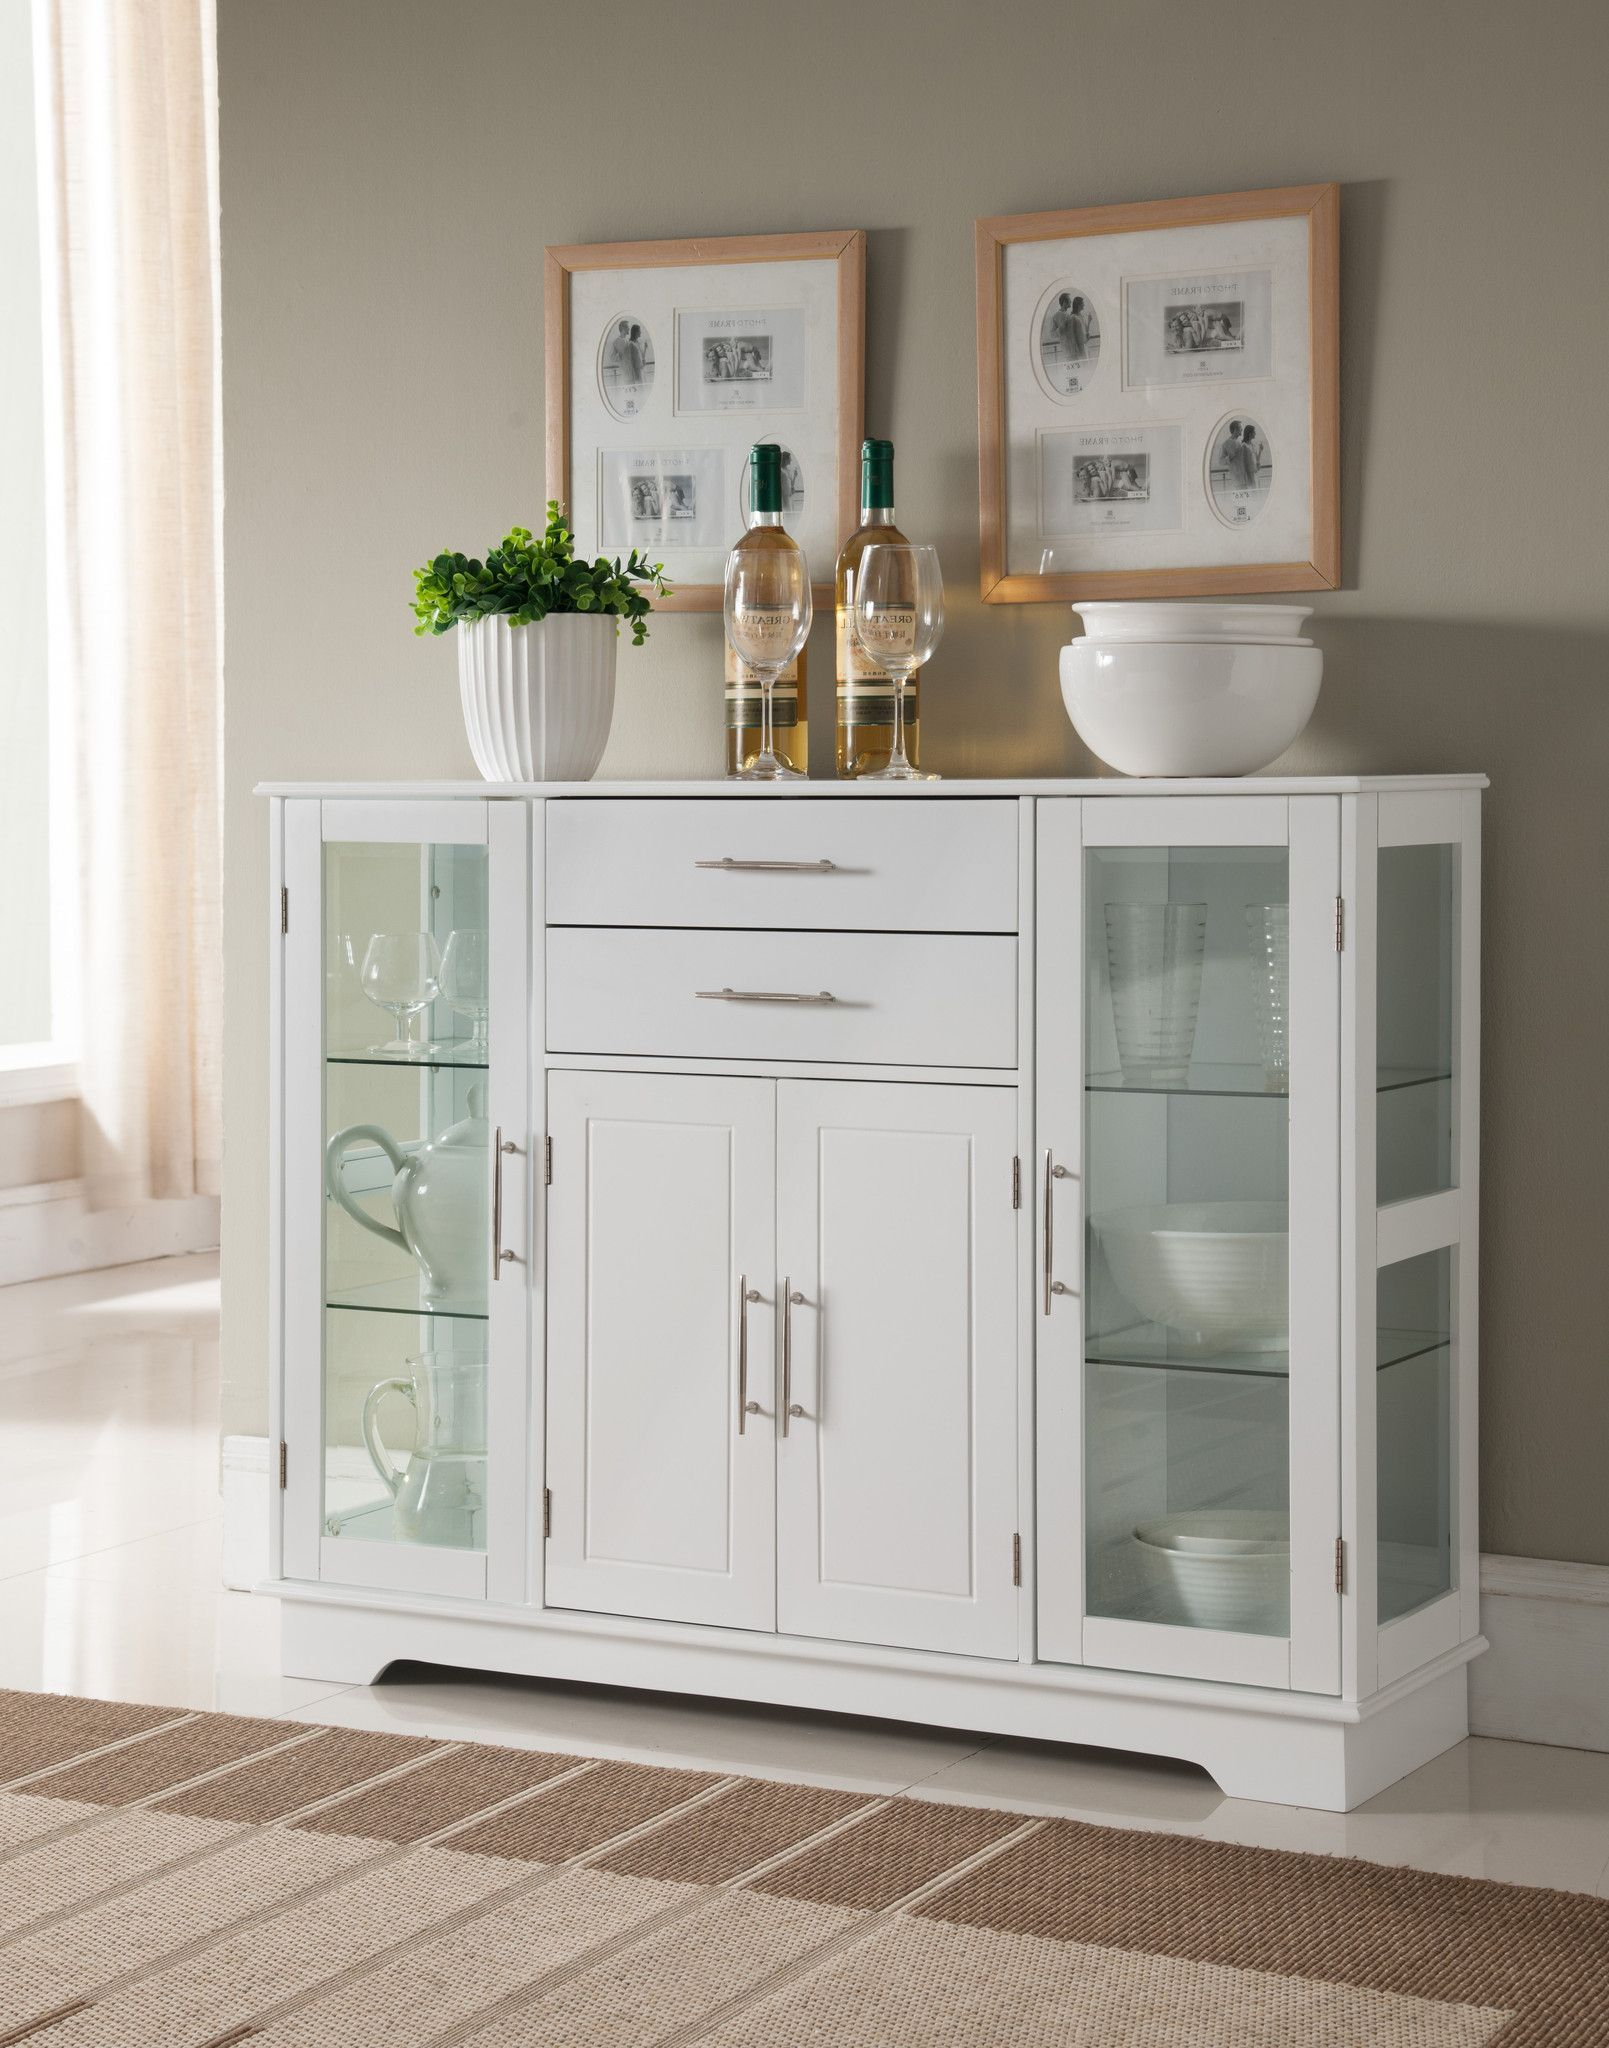 Oak Kitchen Buffet Cabinet Pilaster Designs - White Wood Kitchen Storage Display Cabinet Buffet With  Glass Doors, Drawers u0026 Storage